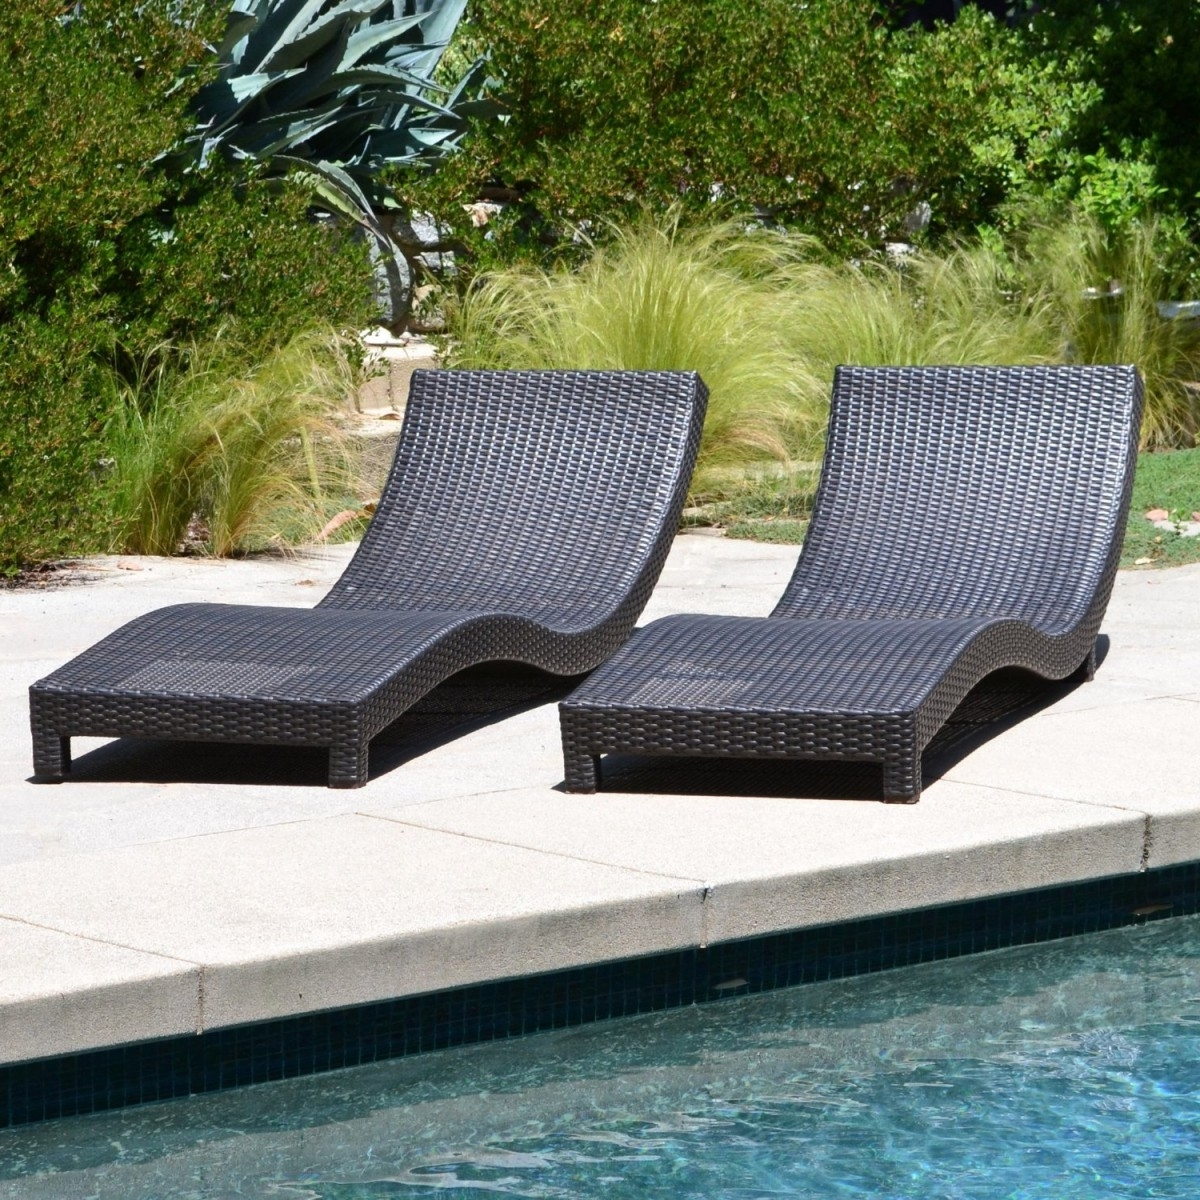 Modern Outdoor Chaise Lounge Chairs Inside 2018 Modern Living Outdoor Chaise Lounge Chairs W/ Cushions (View 4 of 15)